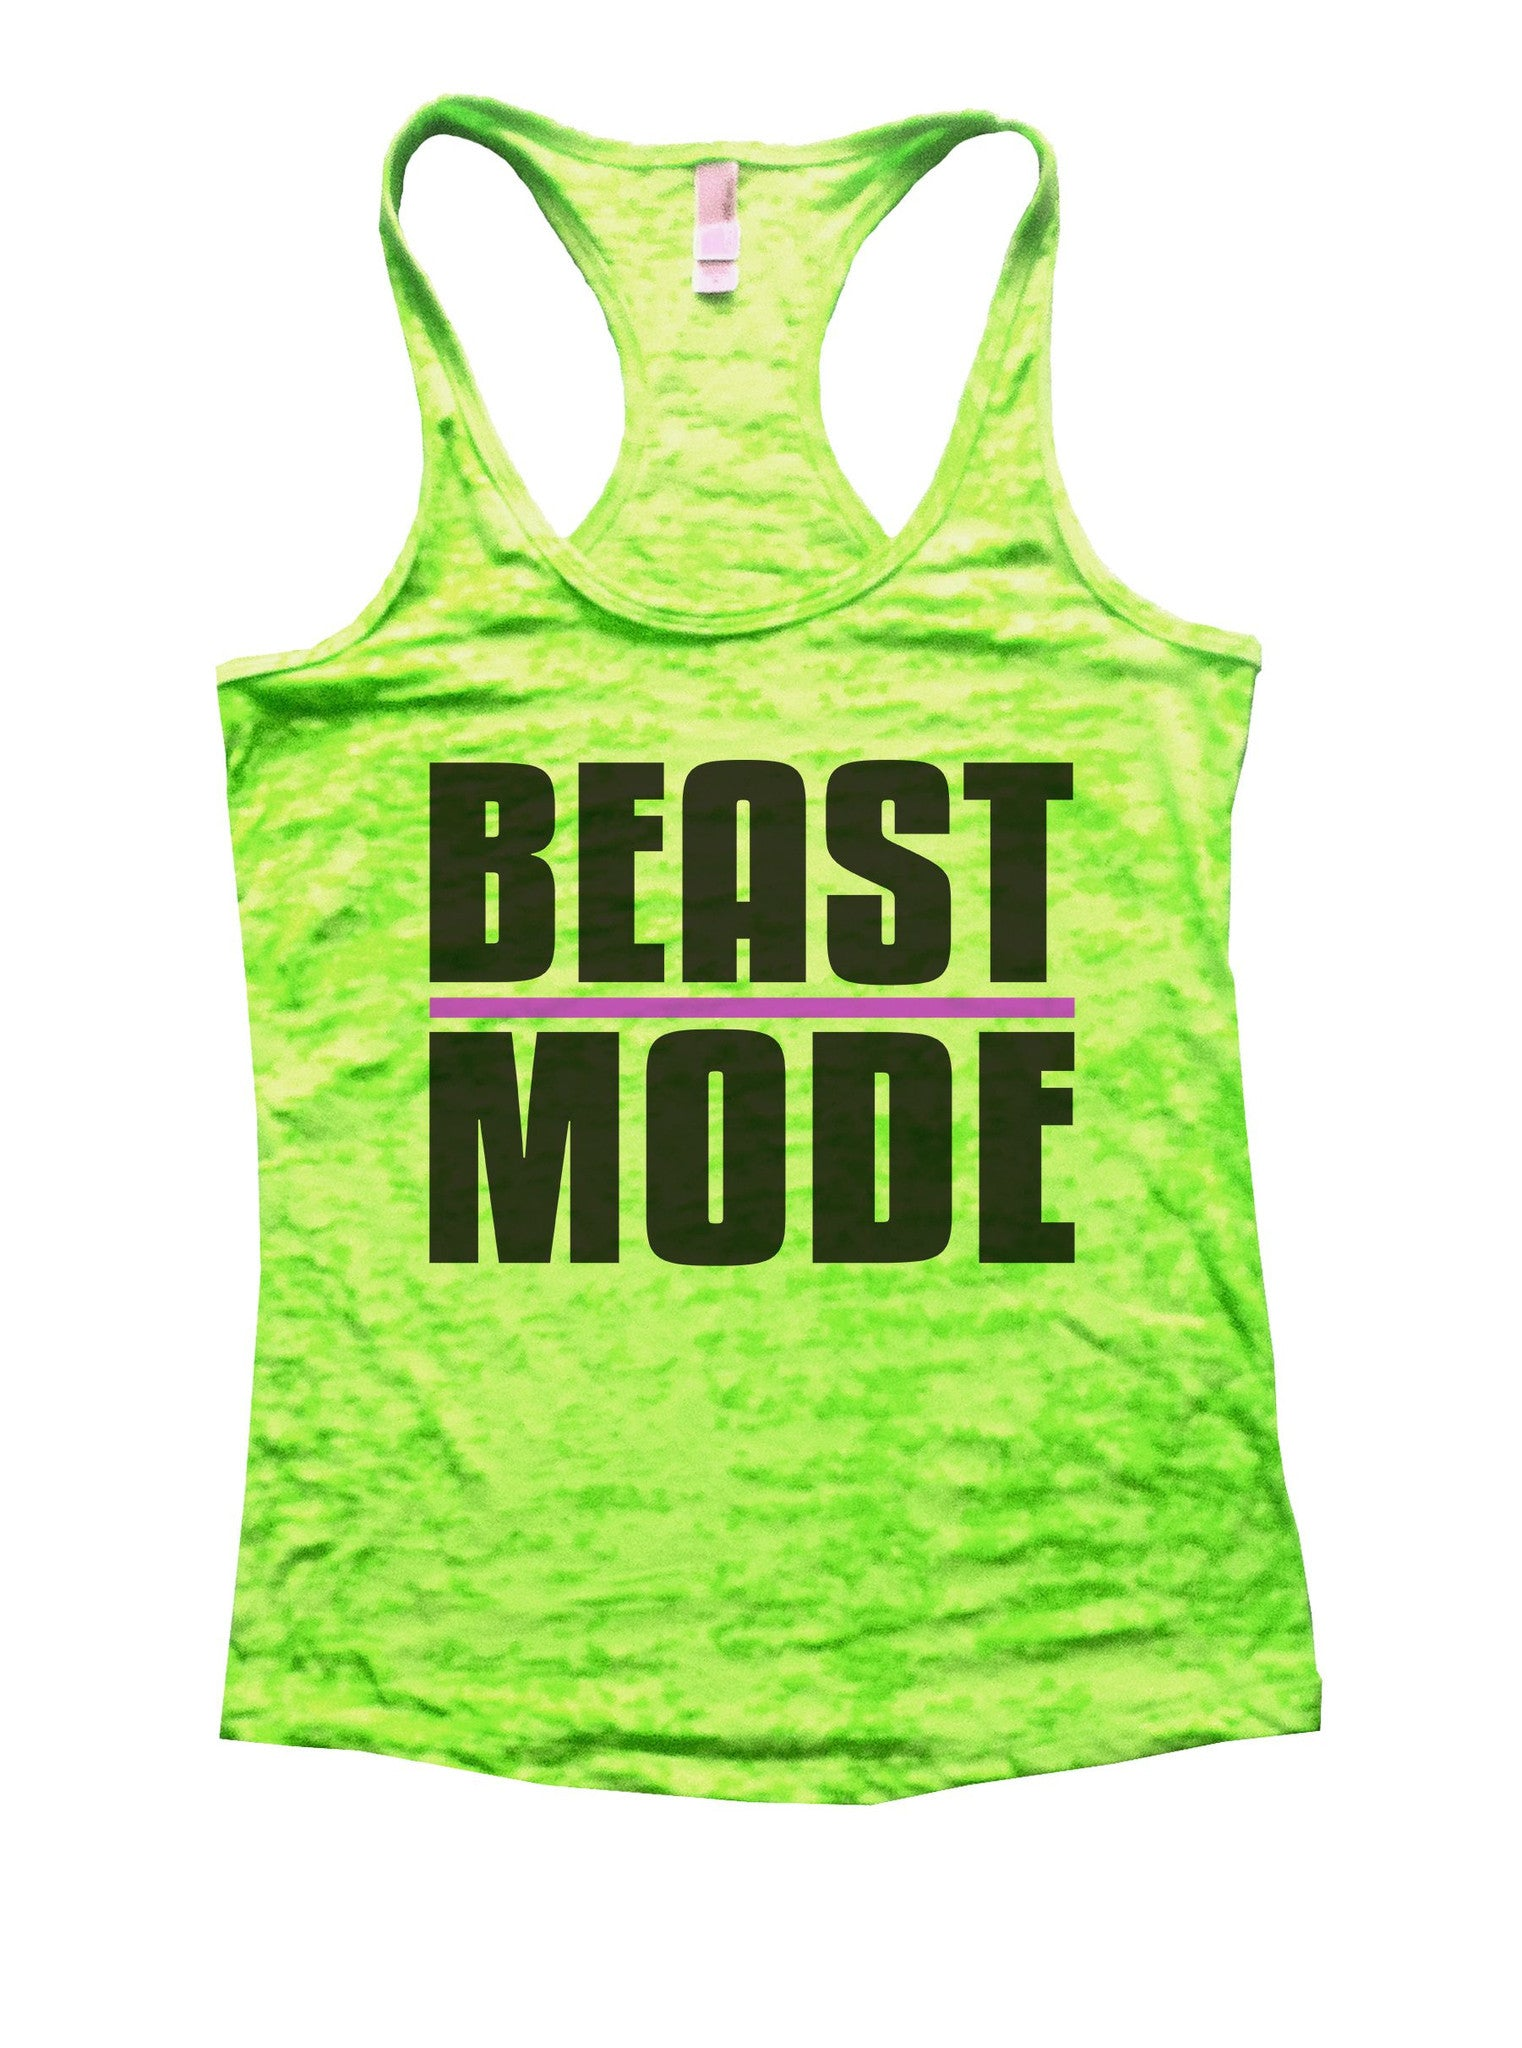 Beast Mode Burnout Tank Top By BurnoutTankTops.com - 1107 - Funny Shirts Tank Tops Burnouts and Triblends  - 2